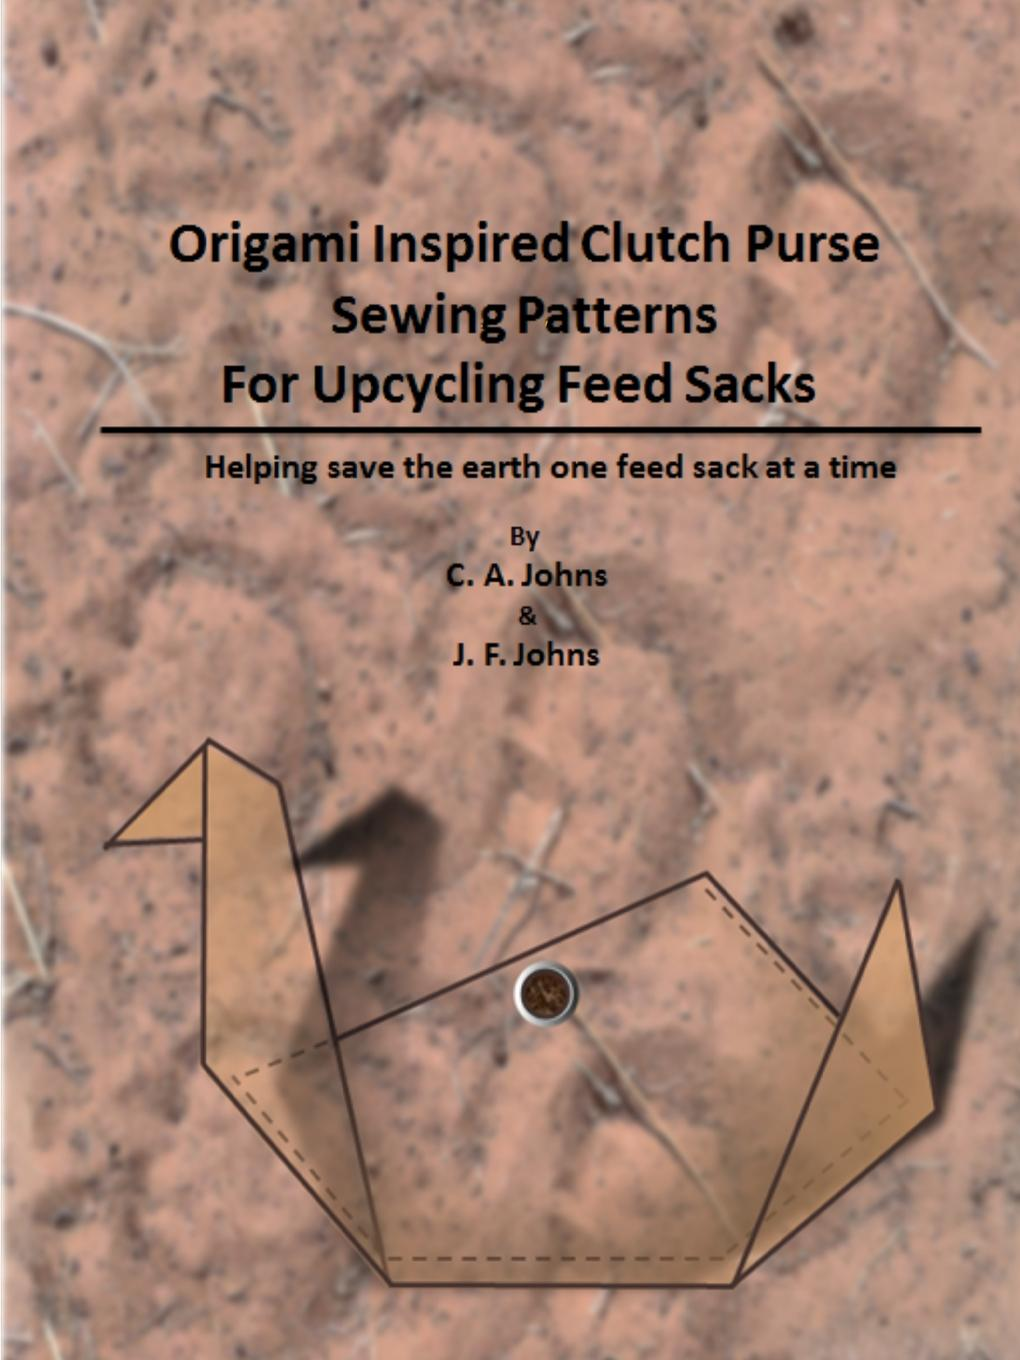 лучшая цена J. F. Johns, C. A. Johns Origami Inspired Clutch Purse Sewing Patterns for Upcycling Feed Sacks